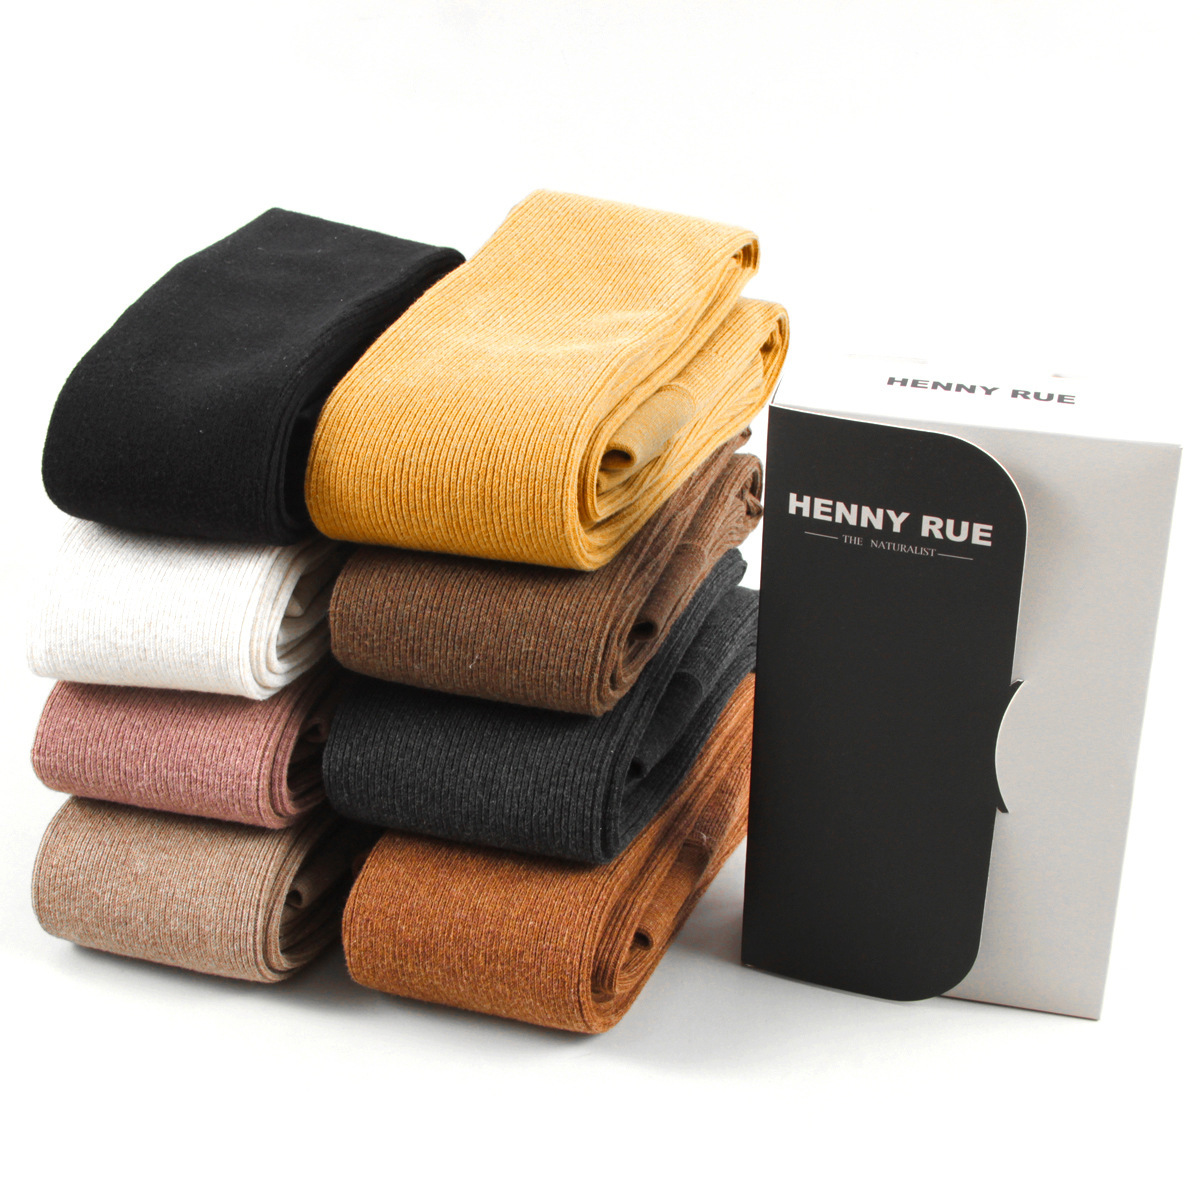 [excellent under boots] new cotton dragon claw wool with medium thickness of 800D in autumn / winter 18, showing thin and slightly pressed underpants